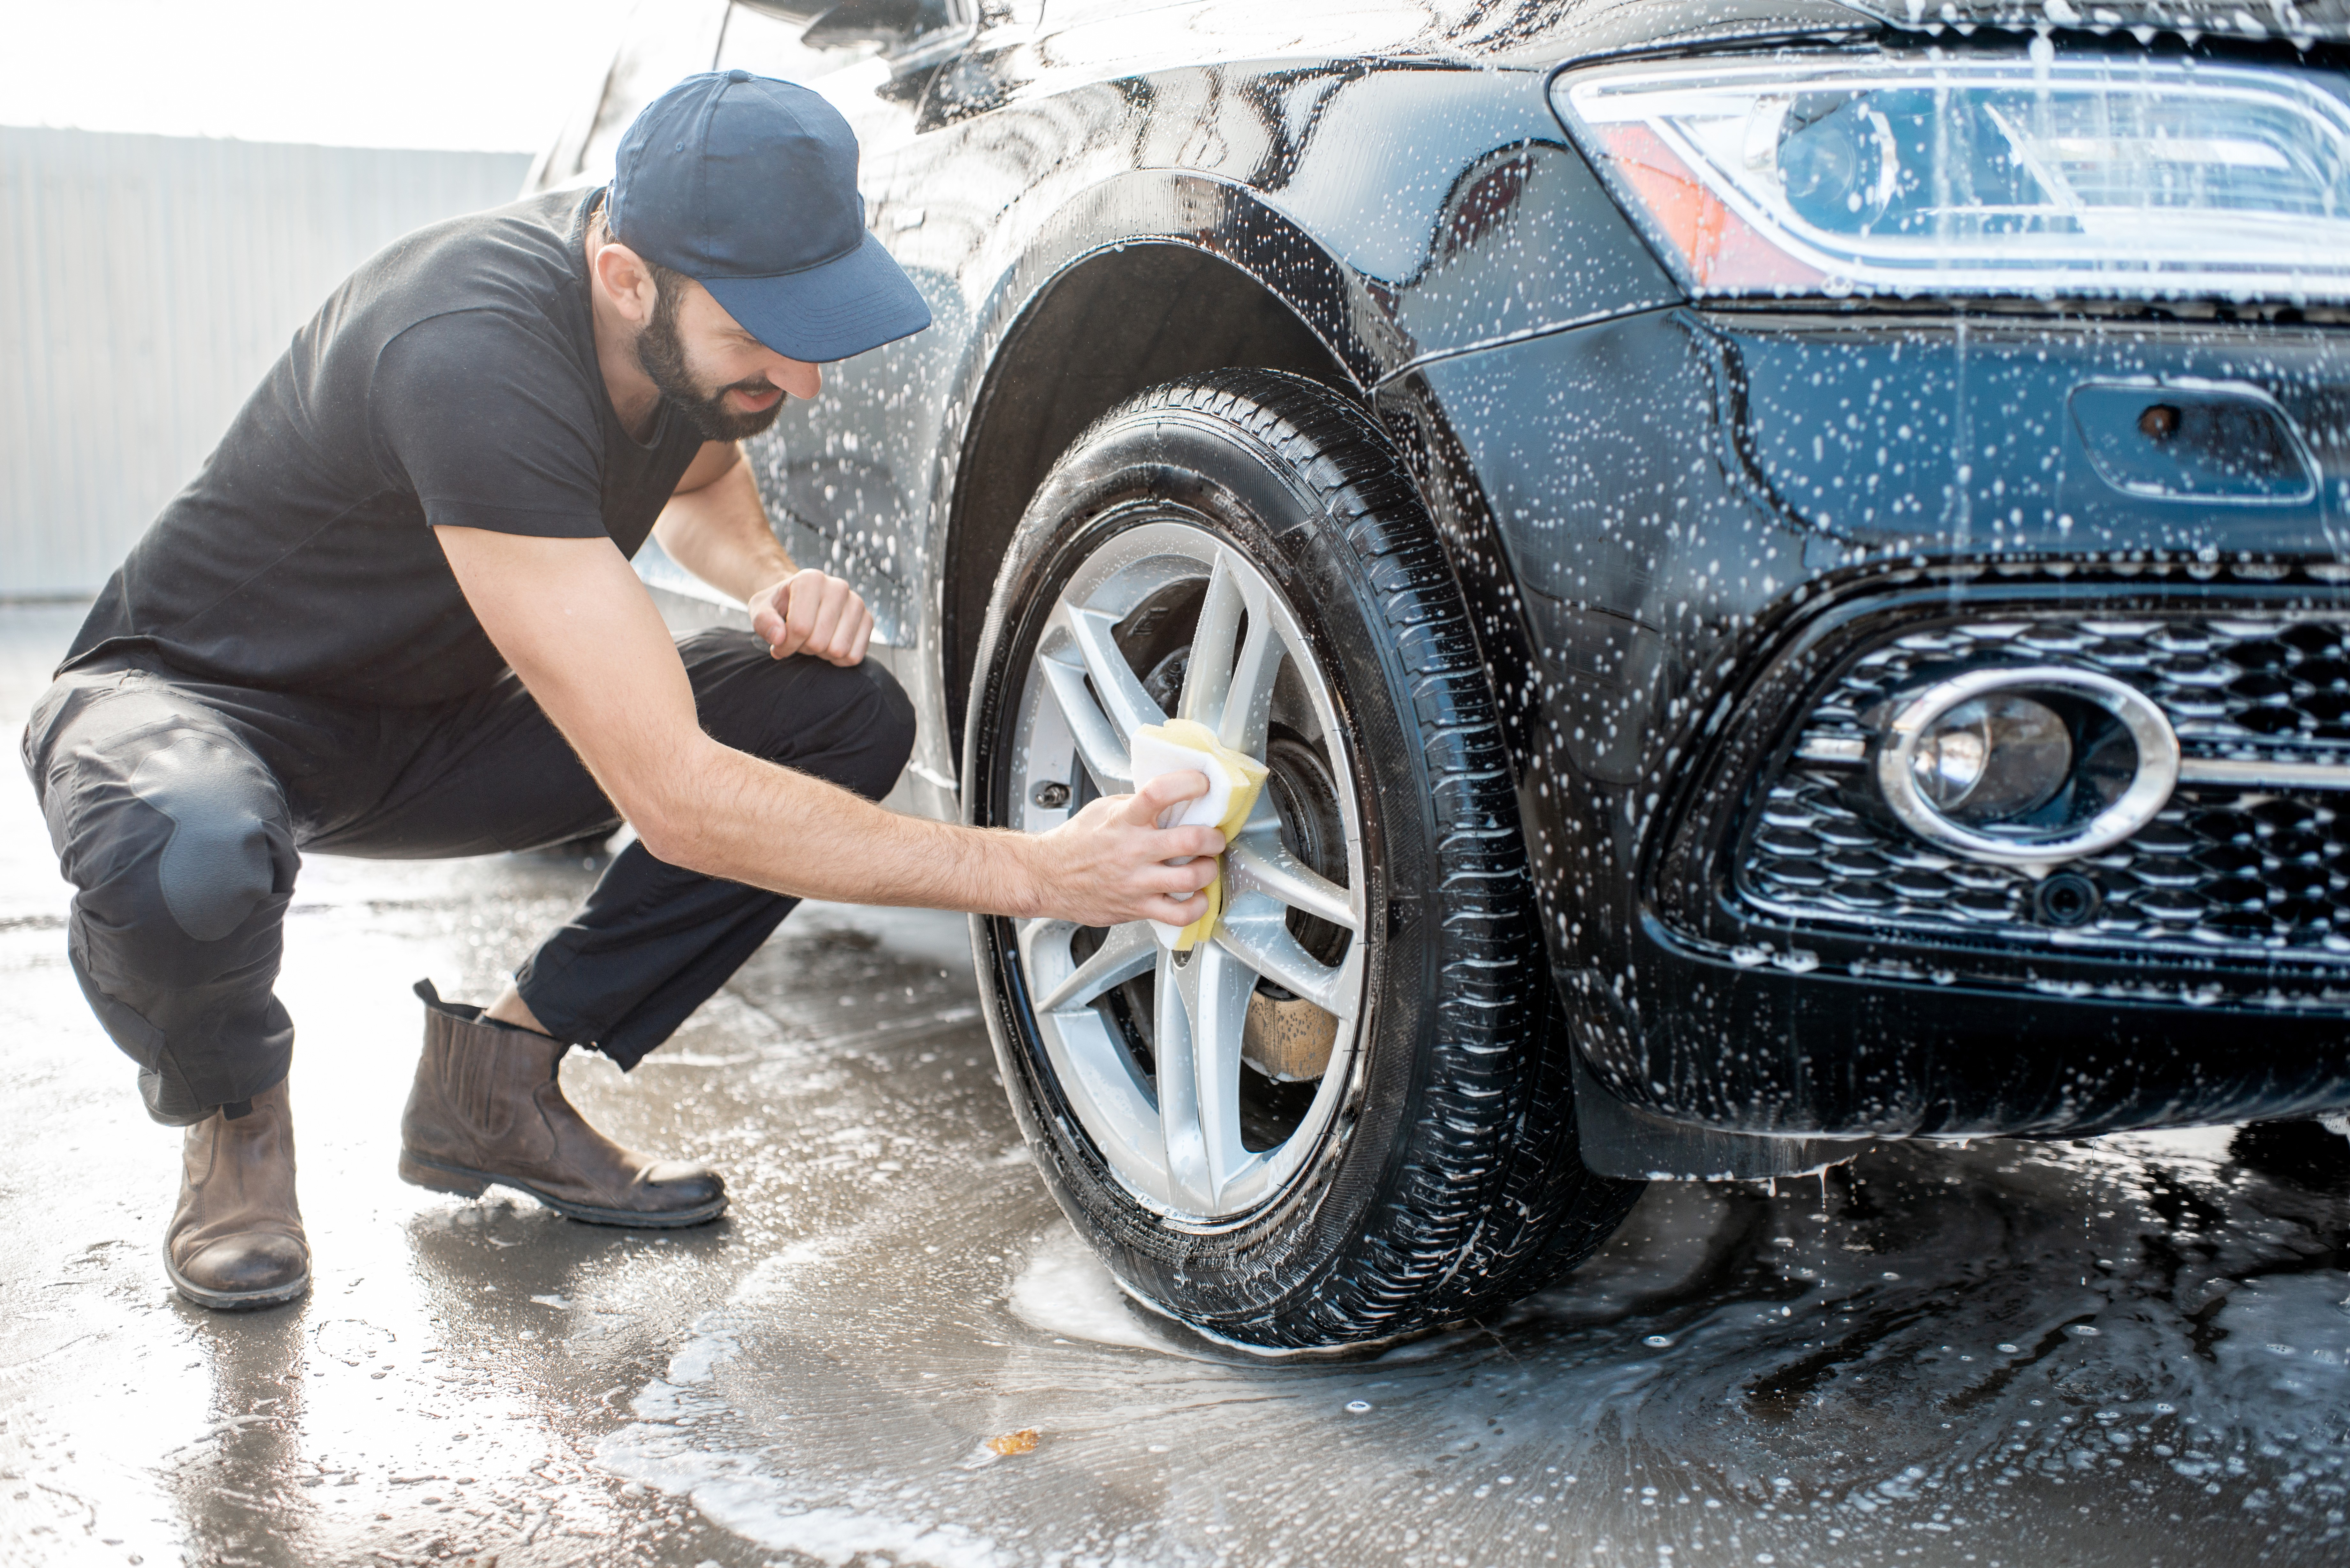 Tips for Cleaning Aluminum Wheels and Tires to Keep Them Looking Great